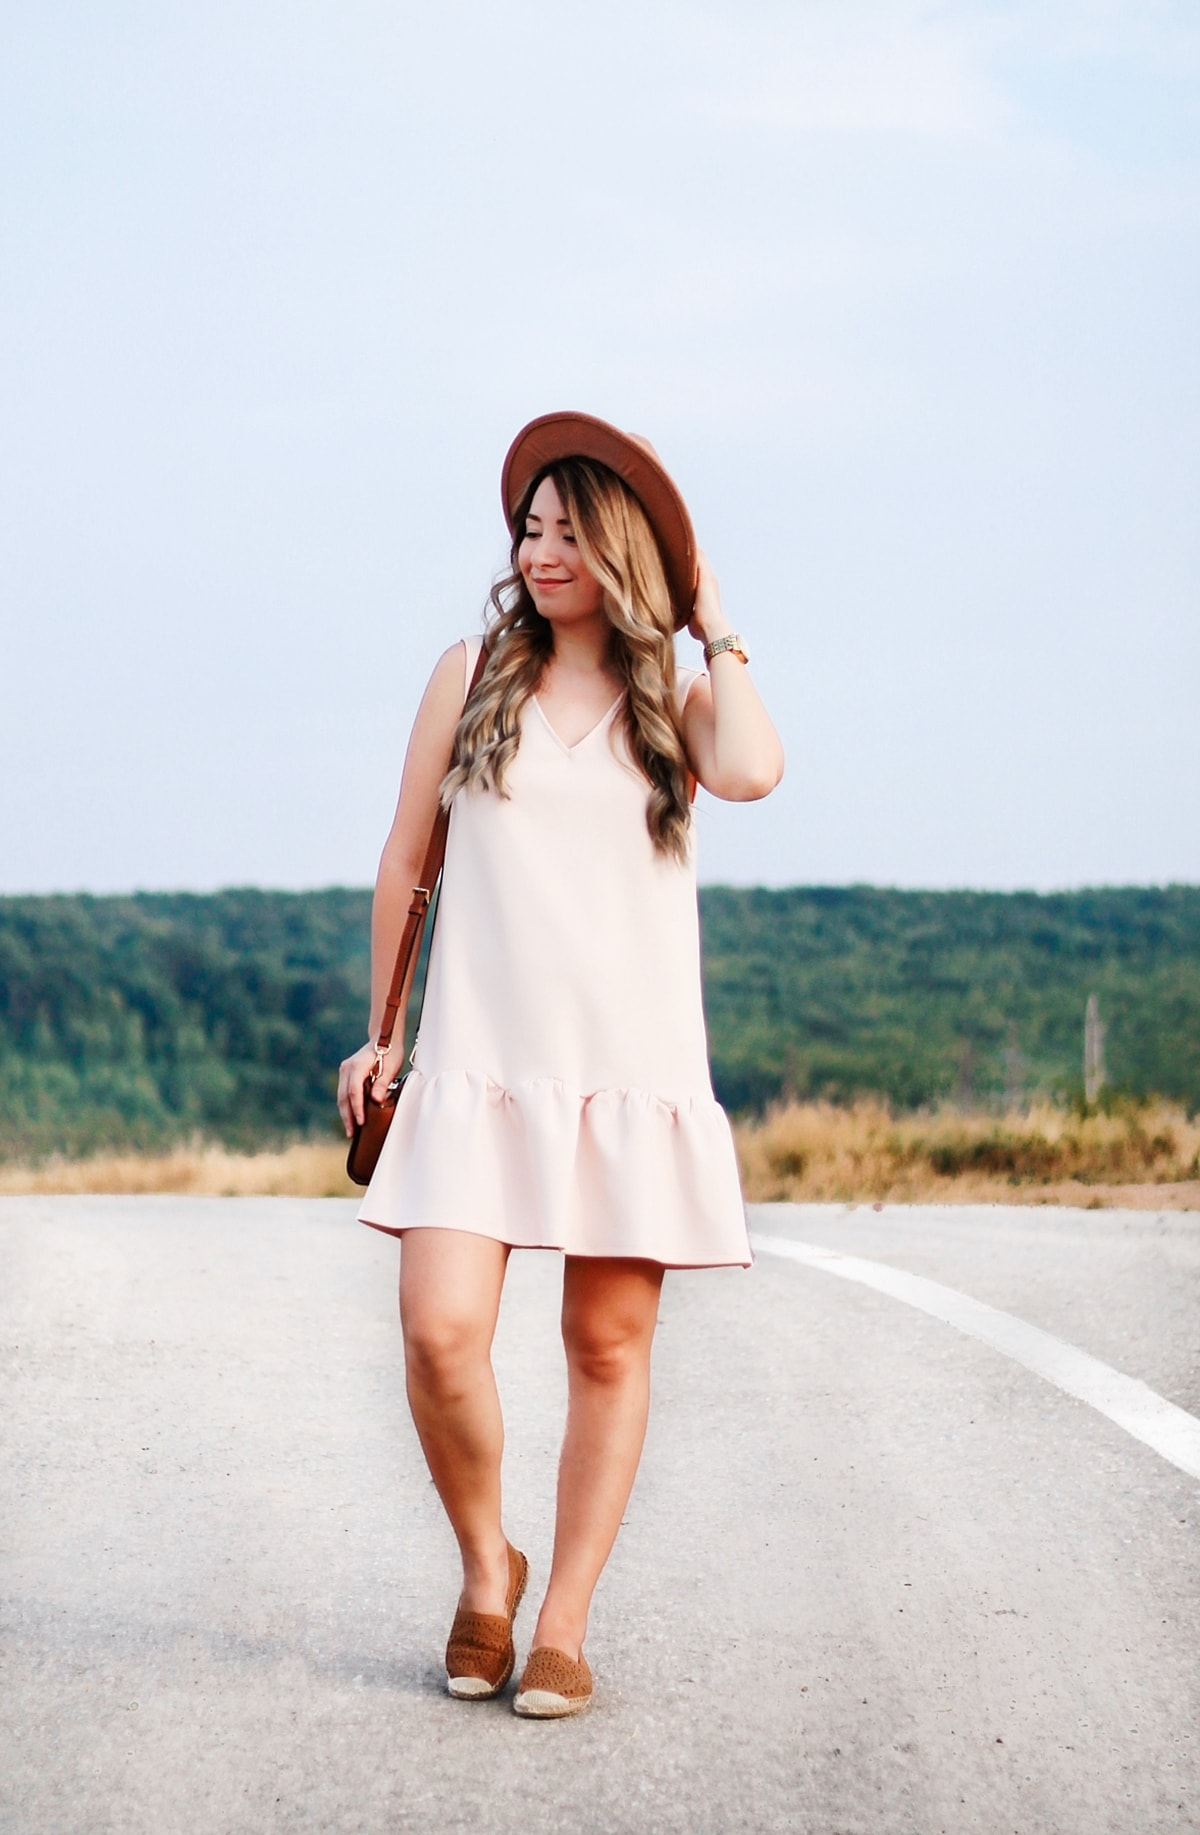 Street style: nude pink dress, backless, sleeveless, boho chic, brown hat, michael kors mini selma bag, fashion blogger andreea ristea, summer look